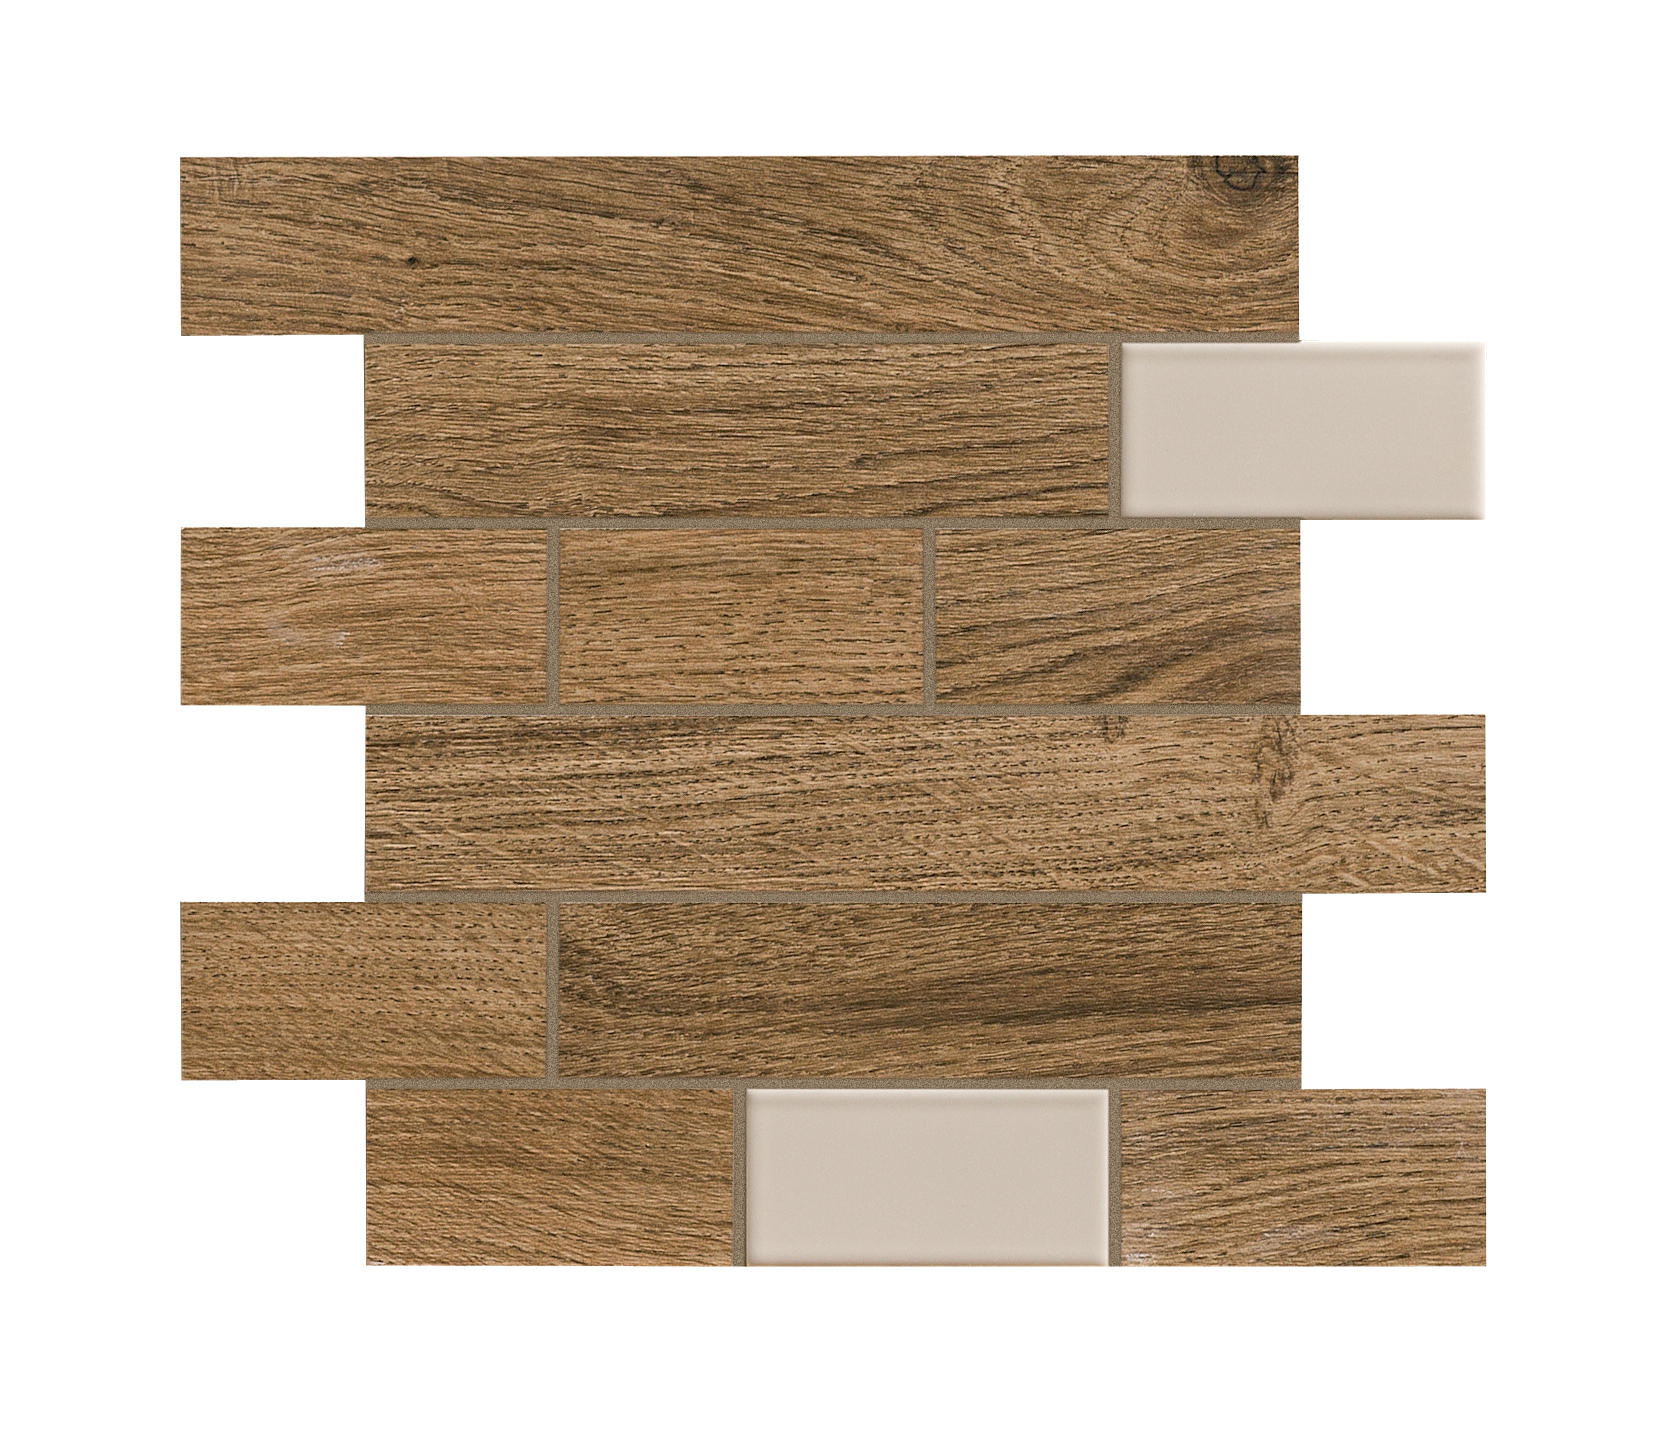 bio timber oak patinato scuro mosaico wall bodenfliesen von lea ceramiche architonic. Black Bedroom Furniture Sets. Home Design Ideas